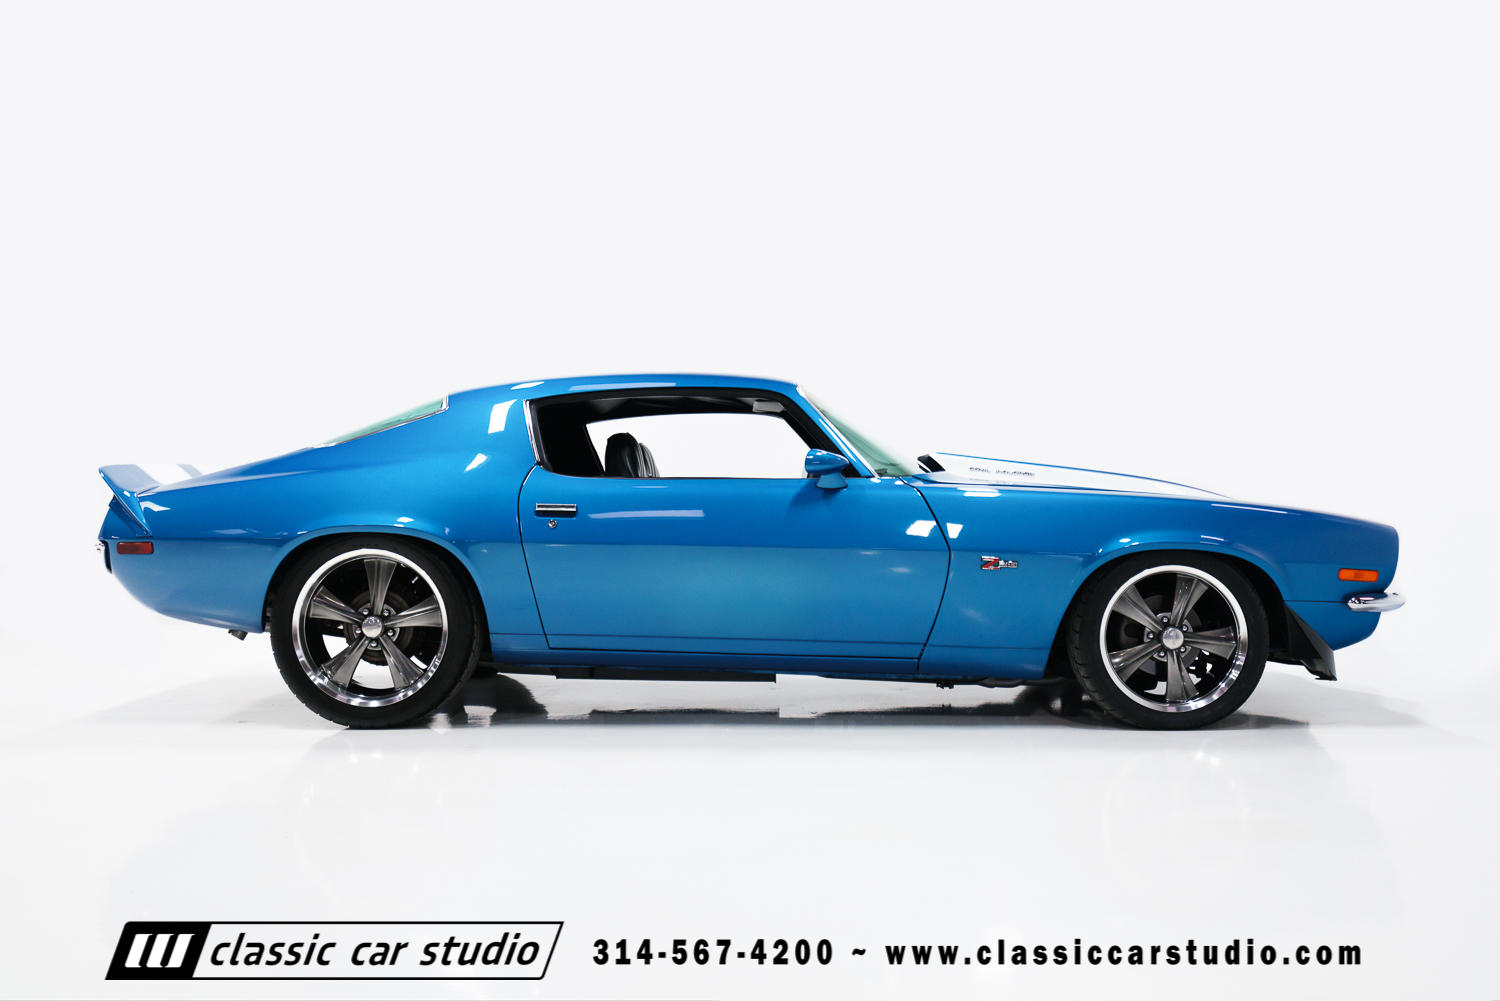 1972 Chevrolet Camaro Classic Car Studio